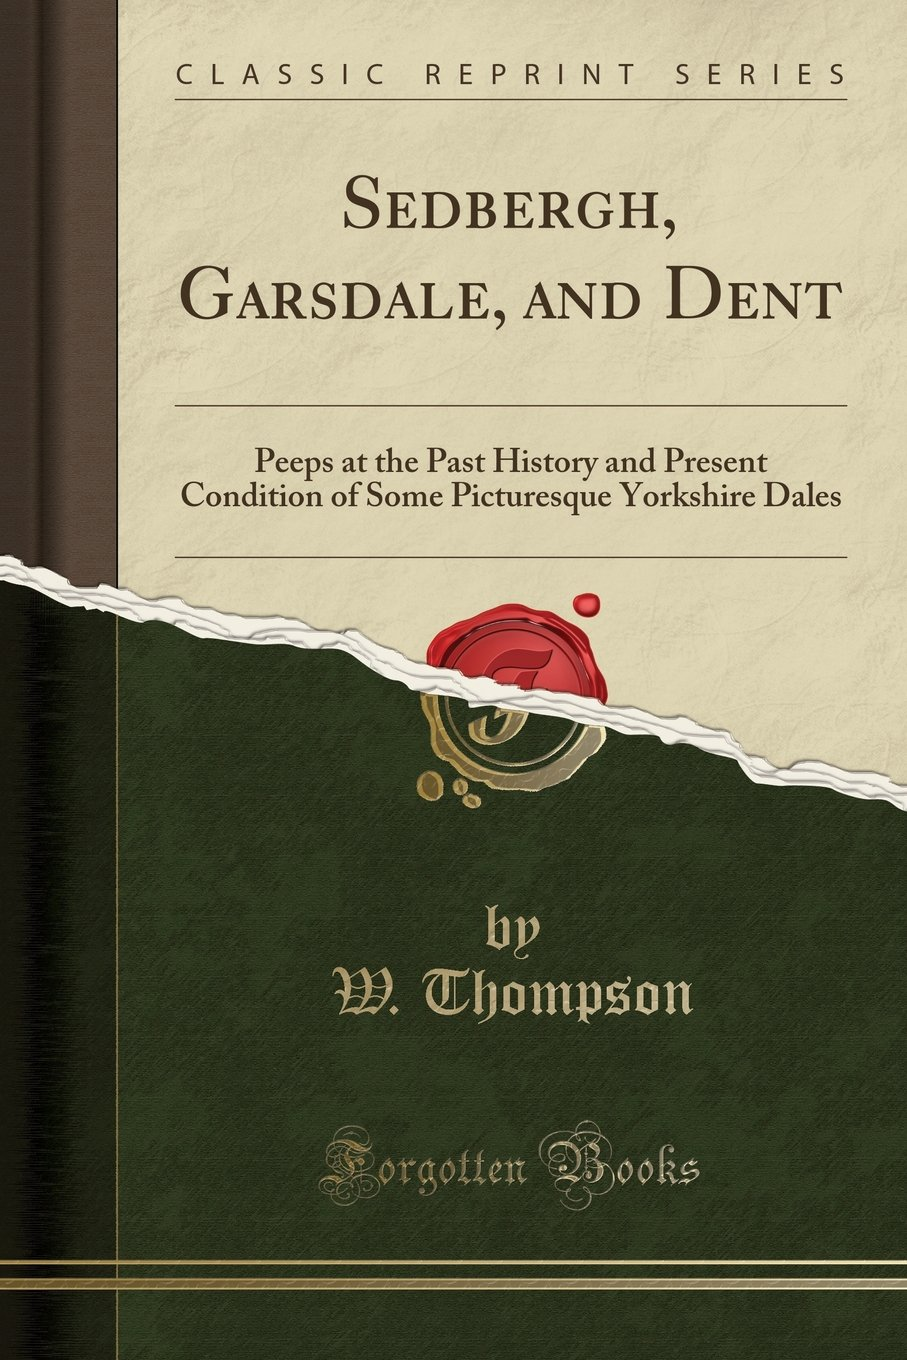 Download Sedbergh, Garsdale, and Dent: Peeps at the Past History and Present Condition of Some Picturesque Yorkshire Dales (Classic Reprint) ebook